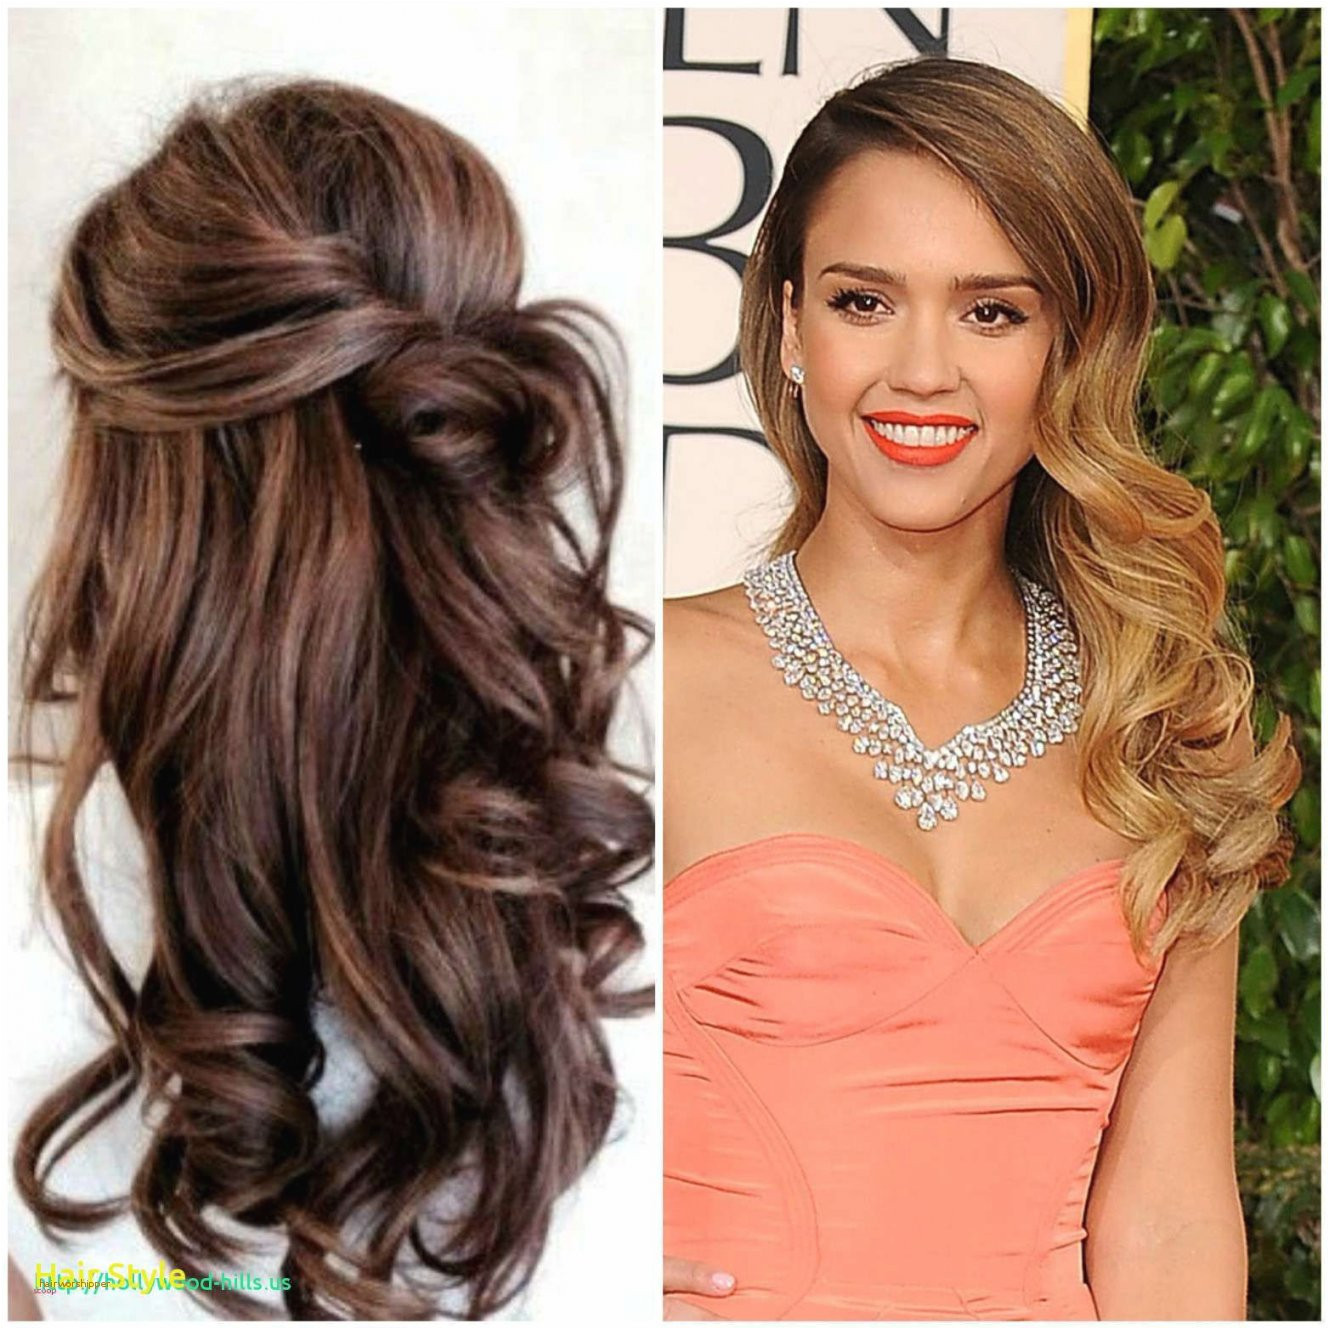 Proud Quick and Easy Hairstyles for Short Hair Step by Step